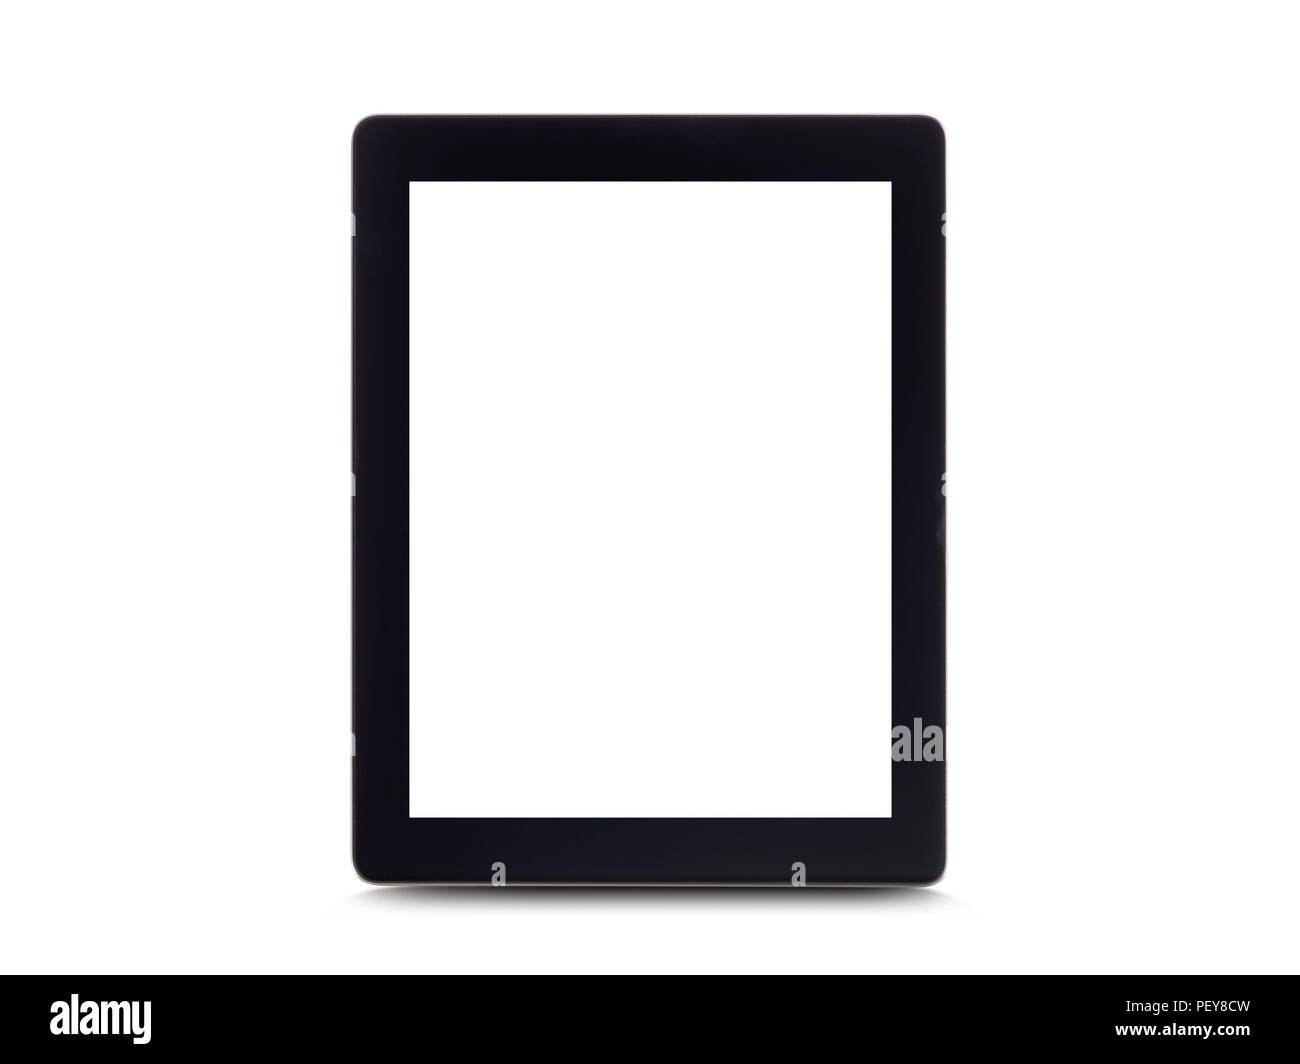 Digitale tablet, Studio gedreht. Stockbild